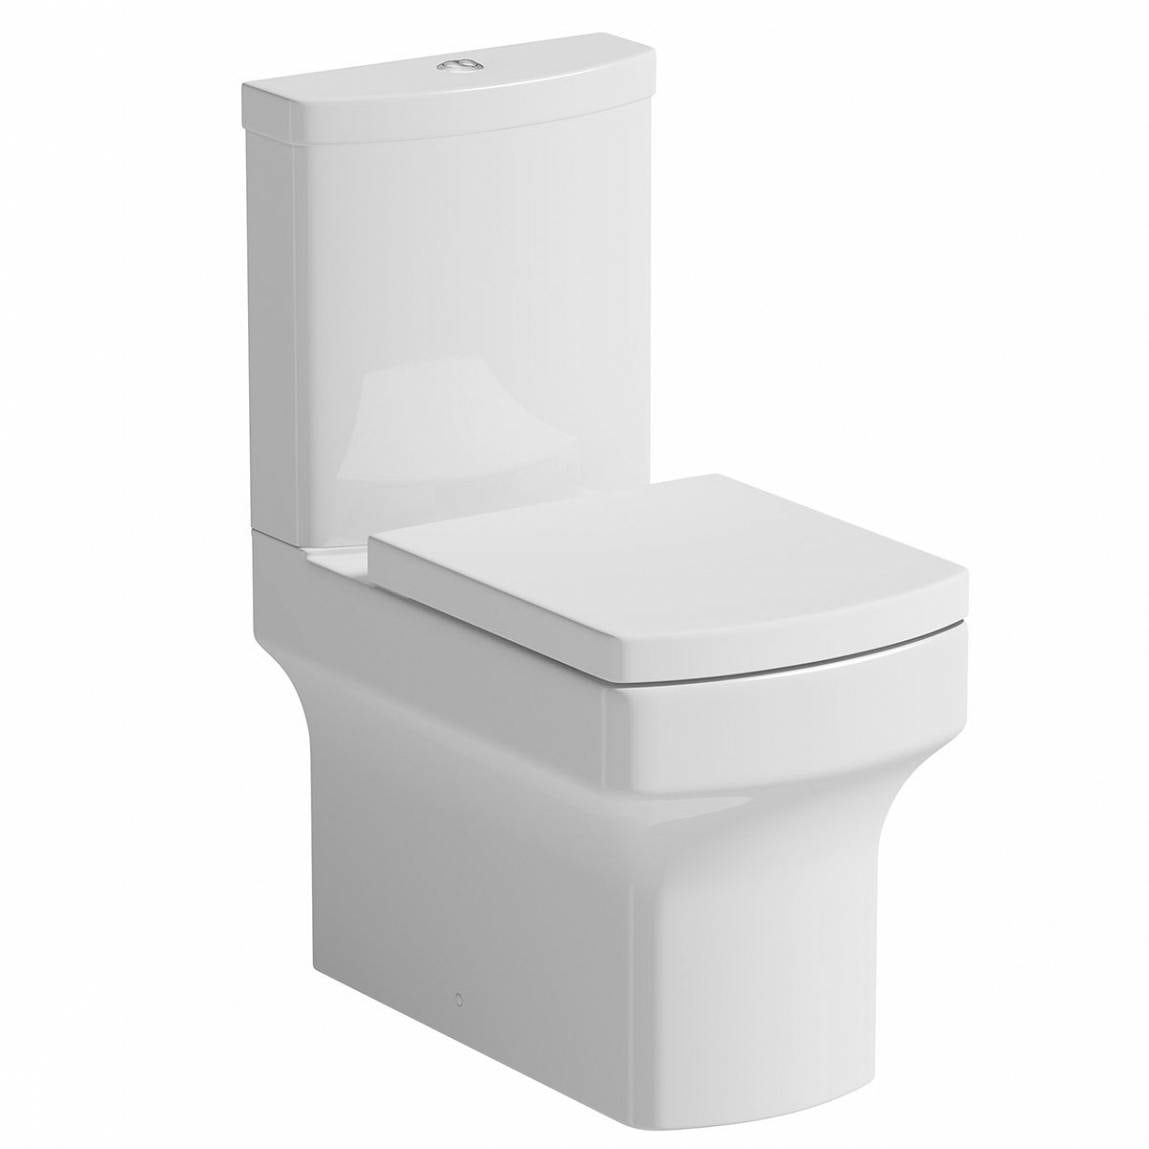 Orchard Wye close coupled toilet with soft close seat